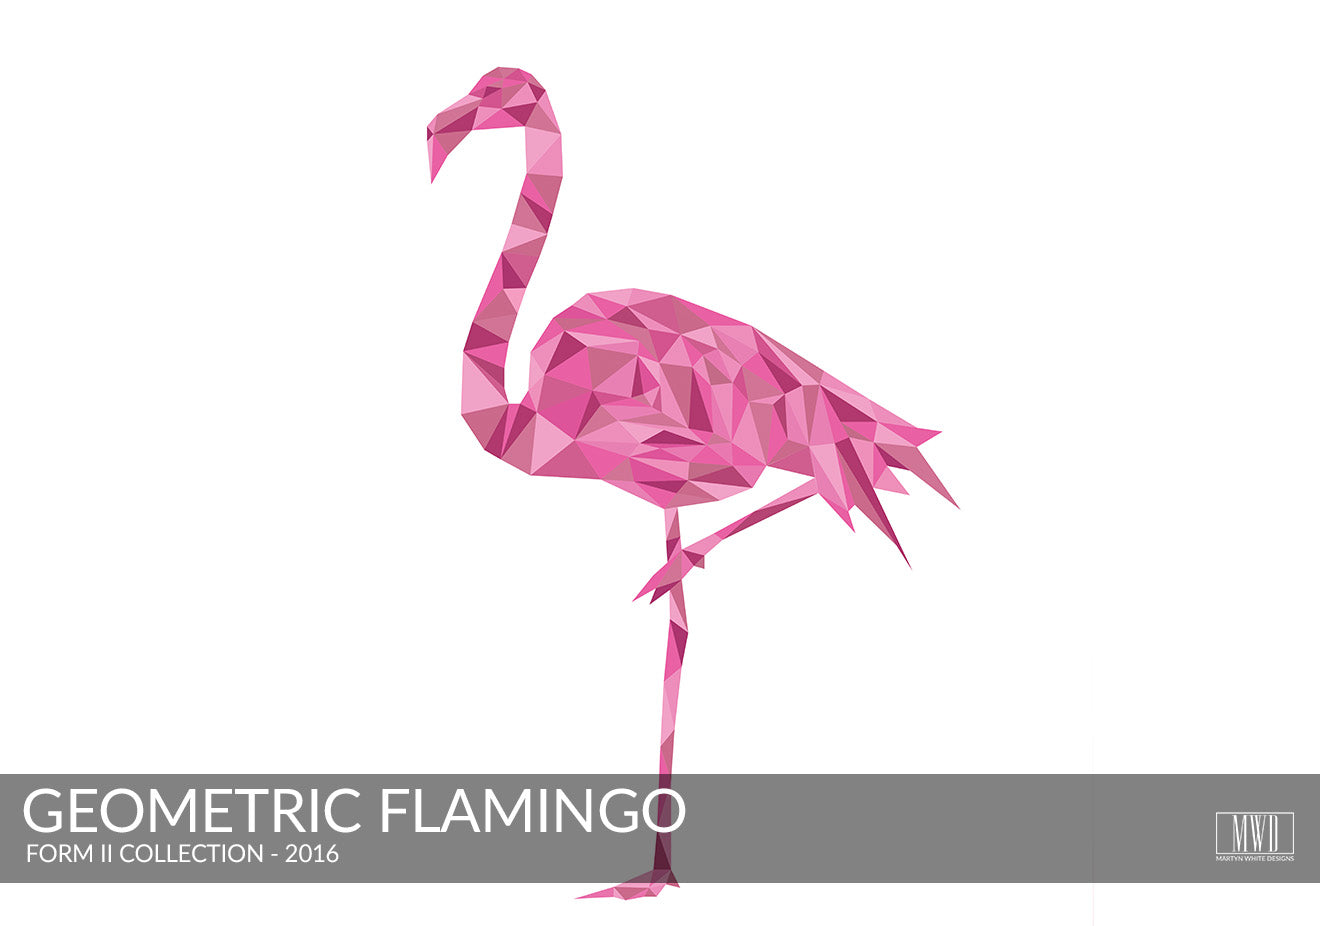 Abstract pink flamingo art print